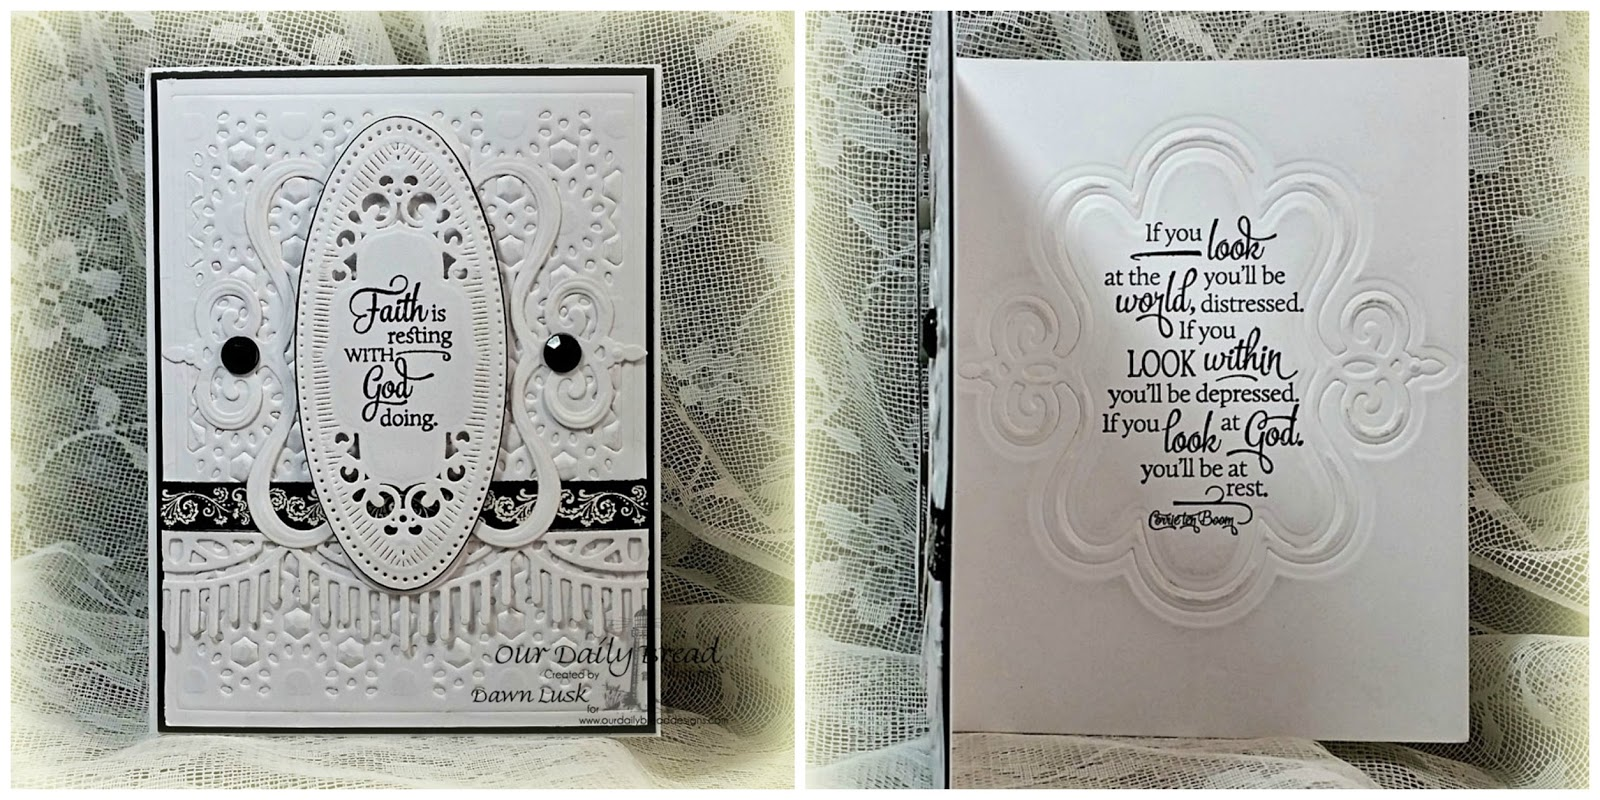 Stamps - Our Daily Bread Designs Quote Collection 4, ODBD Custom Beautiful Borders Dies, ODBD Custom Daisy Chain Background Die